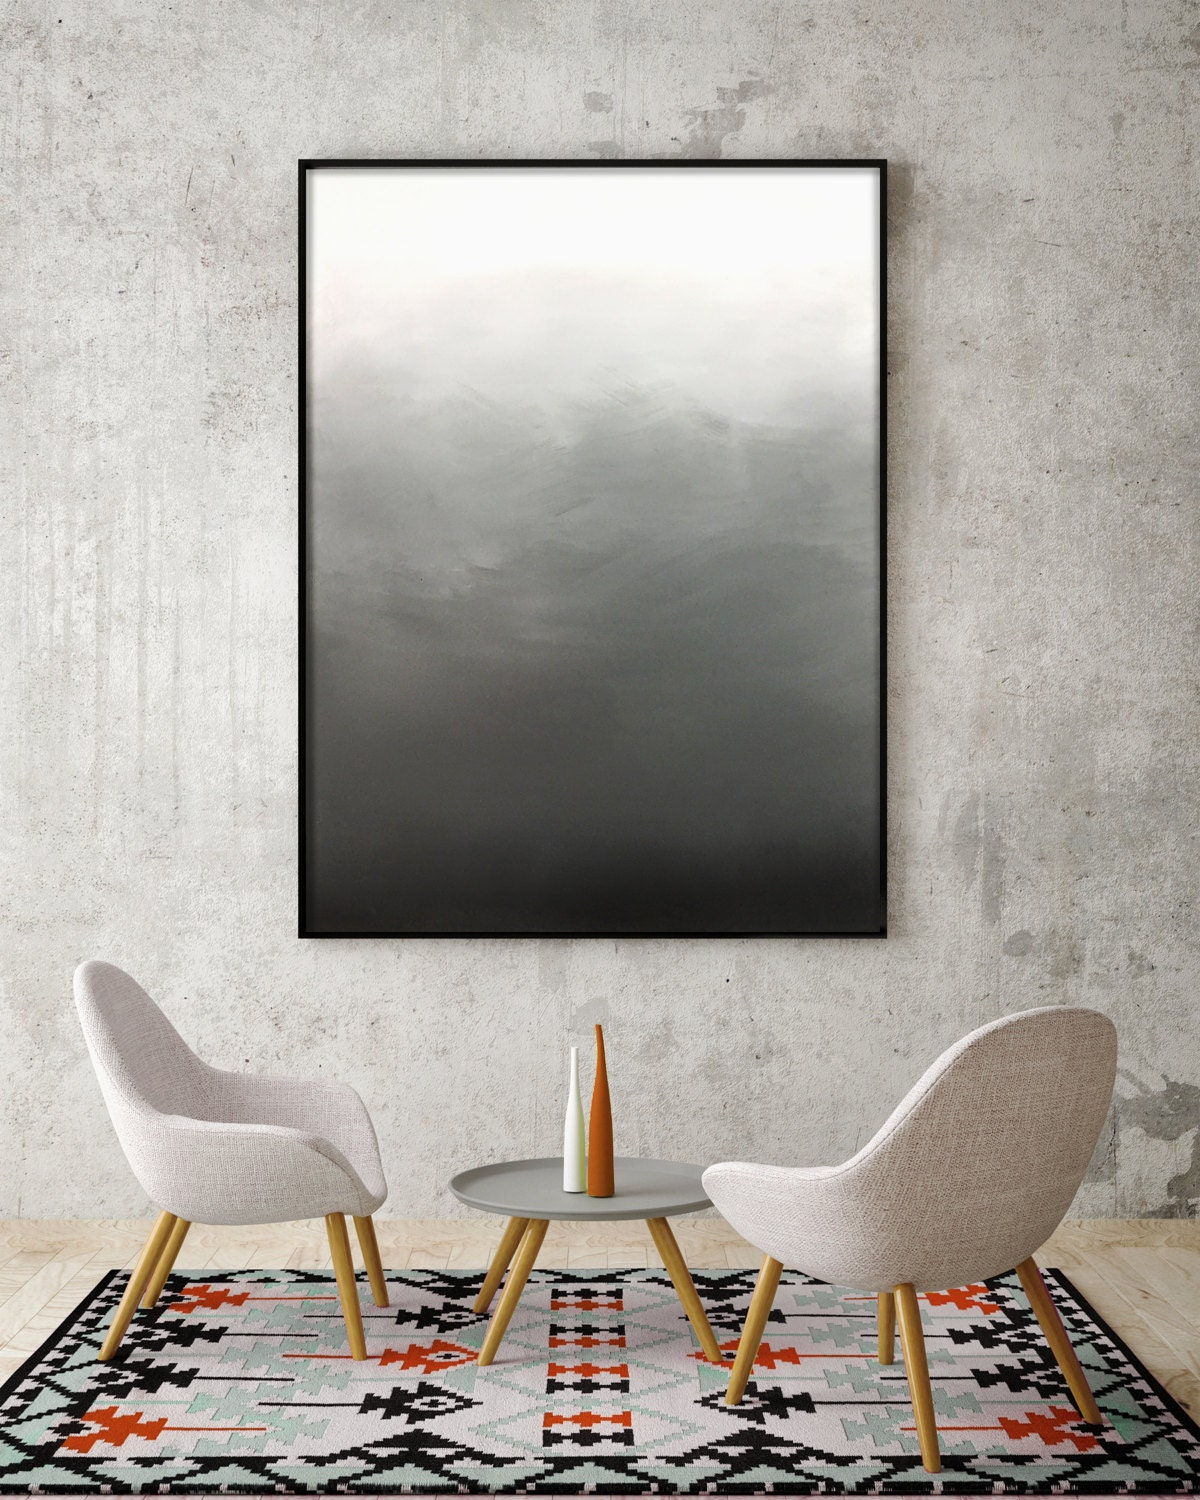 Abstract Black White Grey Ombre Painting Living Room Art Bedroom